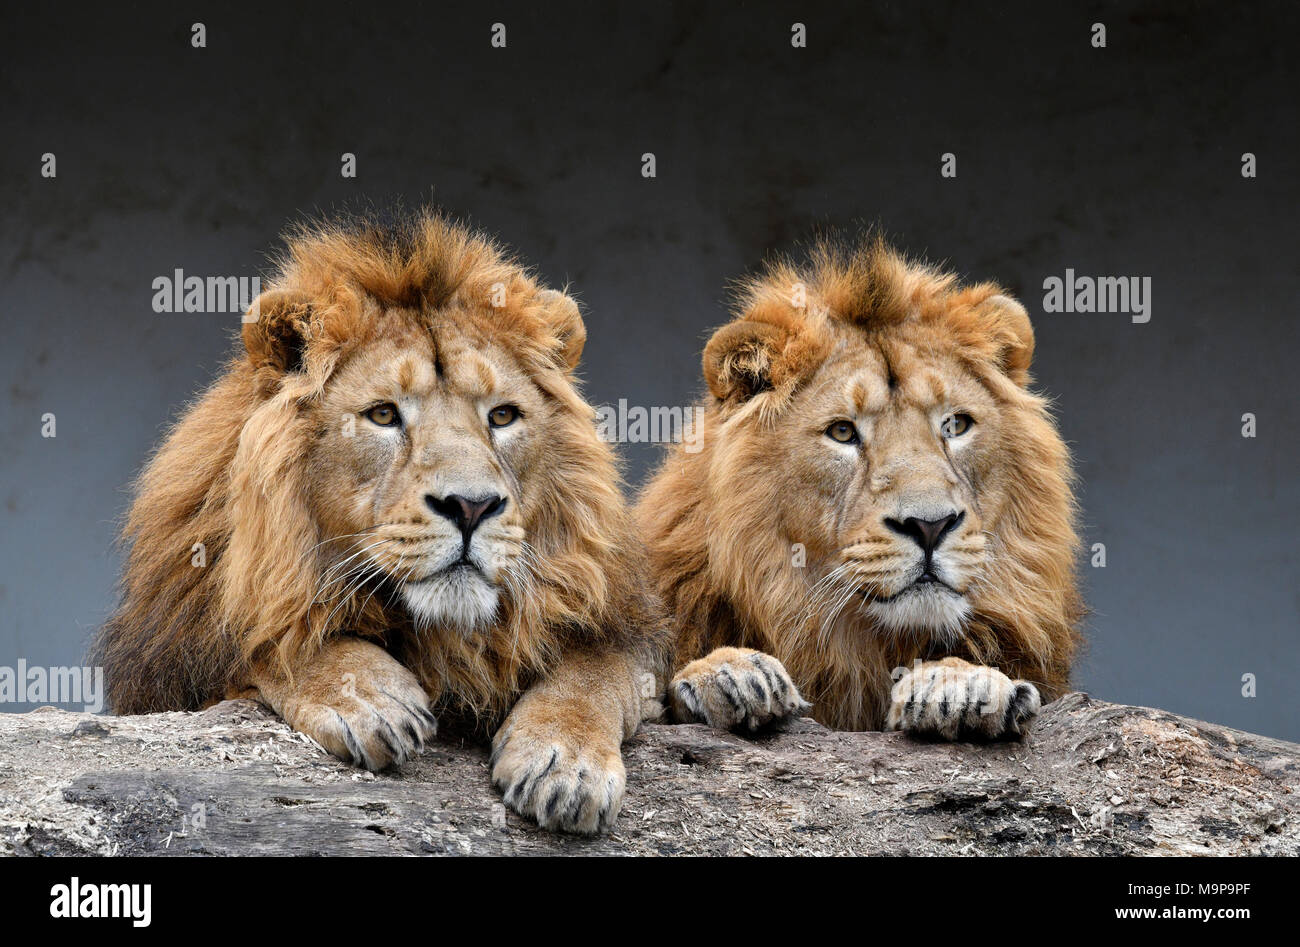 Asiatic Lions (Panthera leo persica), two males side by side, animal portrait, captive - Stock Image